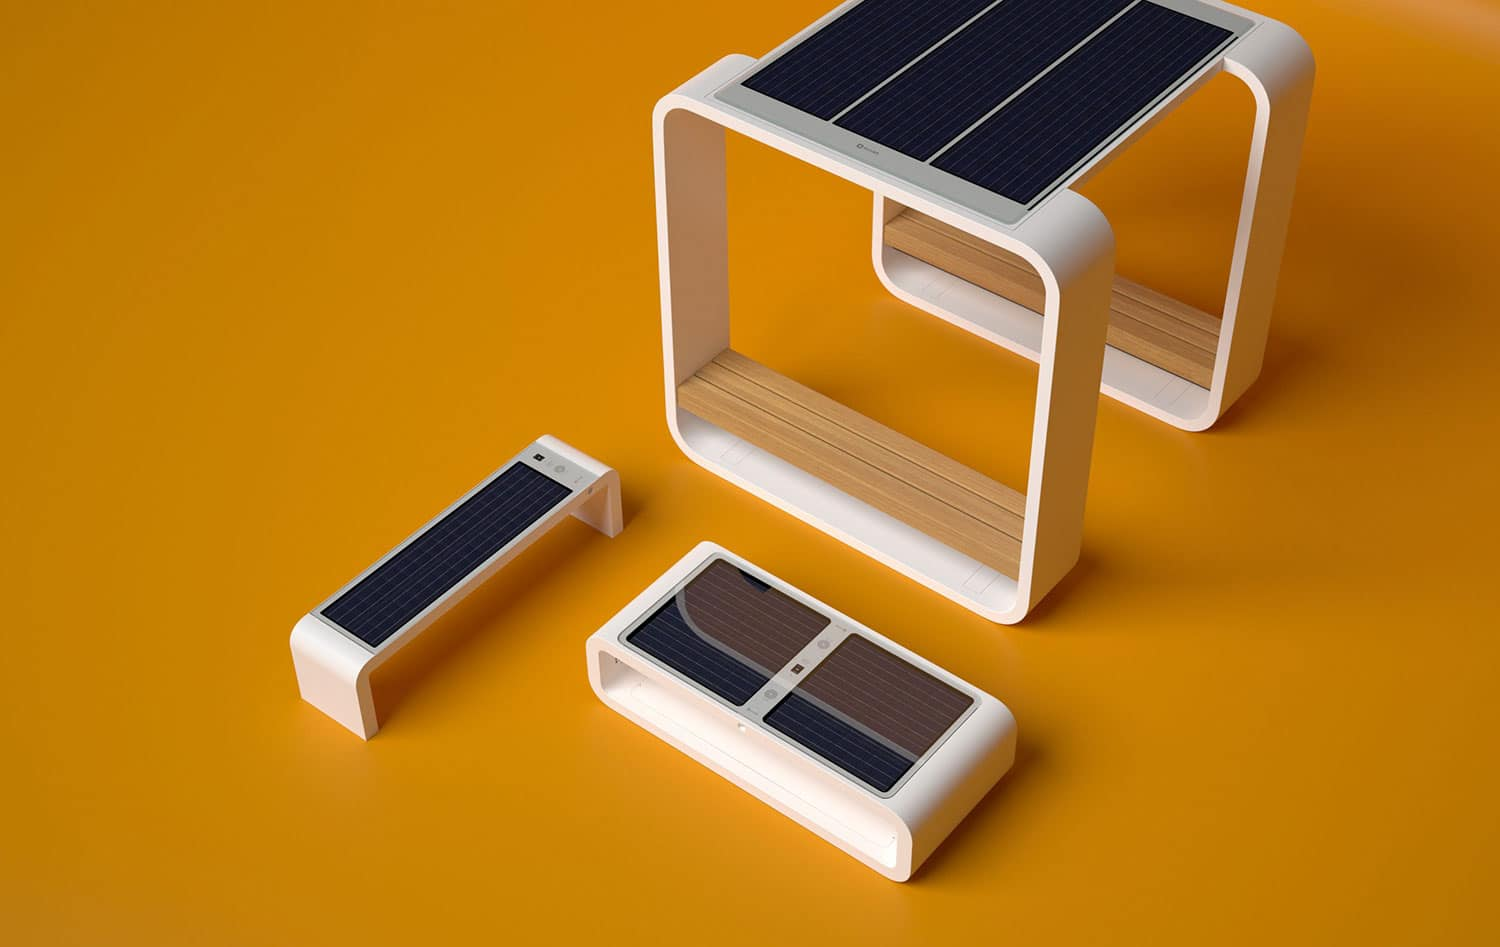 Solar-powered Smartbench provides charging ports and WiFi hotspot